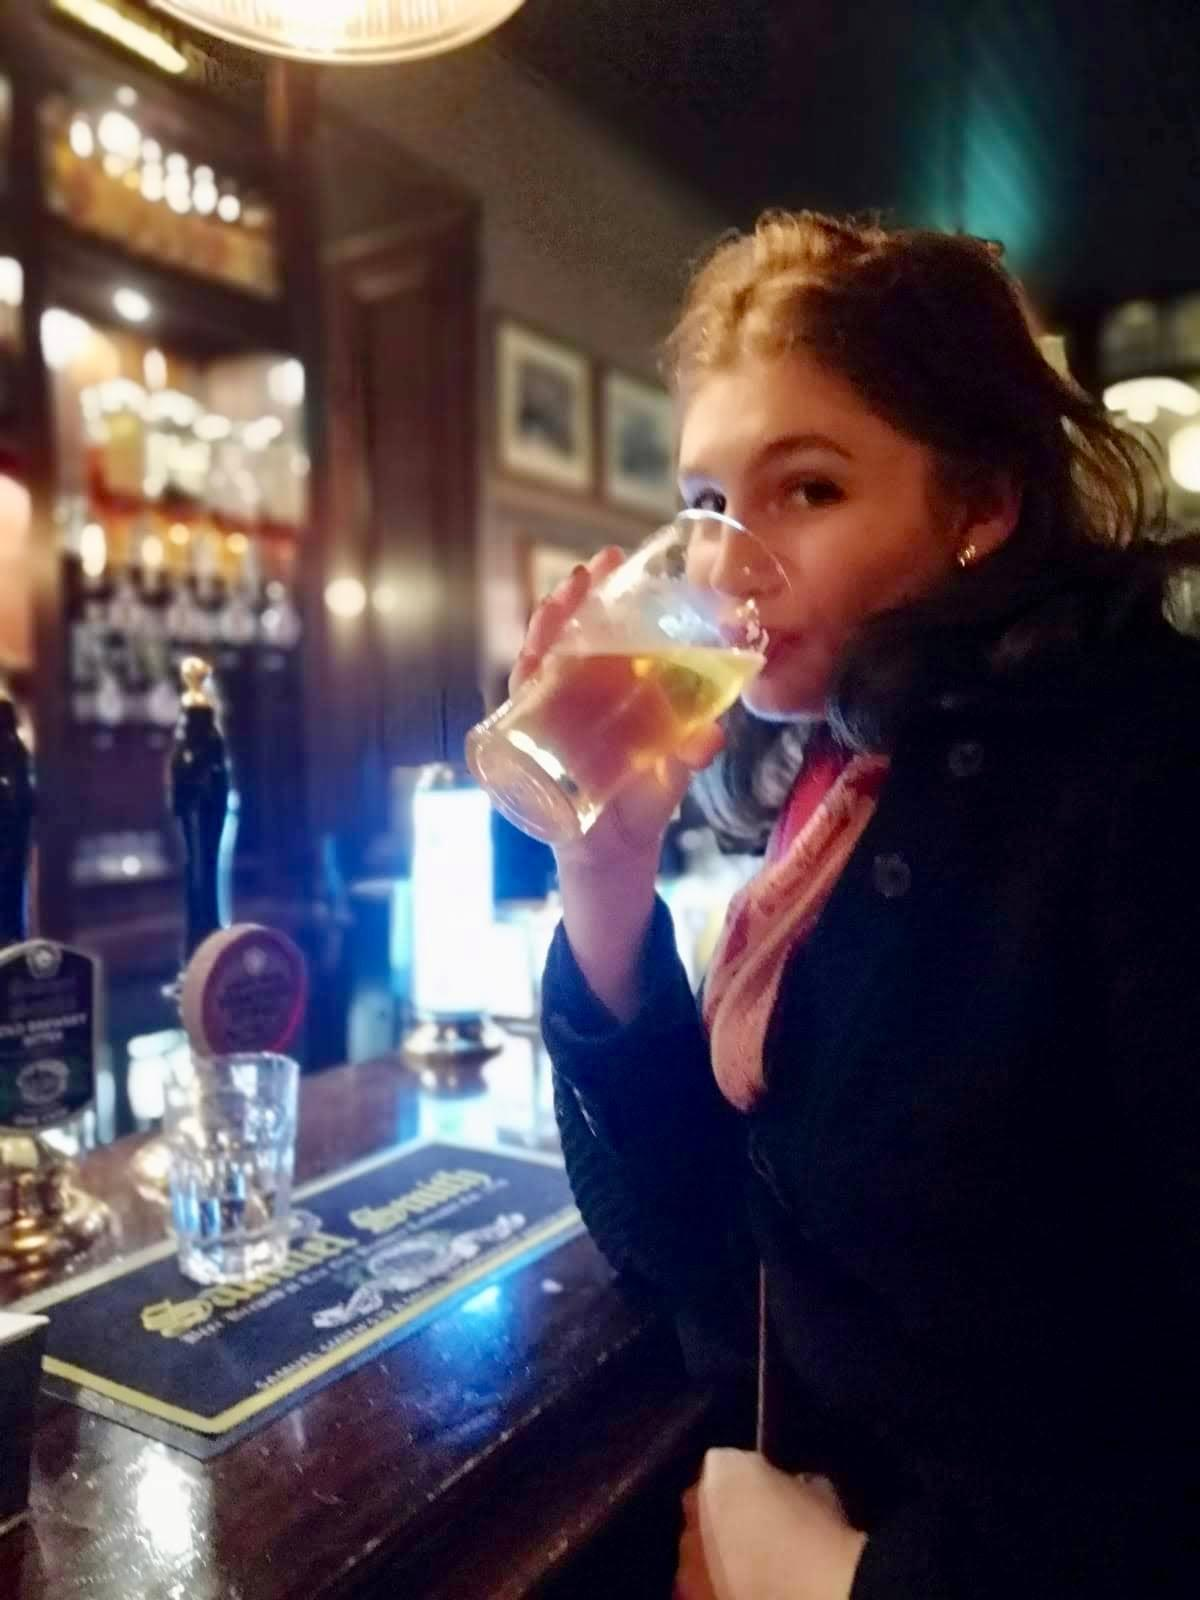 Me drinking a cider at the Fitzroy Tavern--a place George Orwell used to frequent in London.